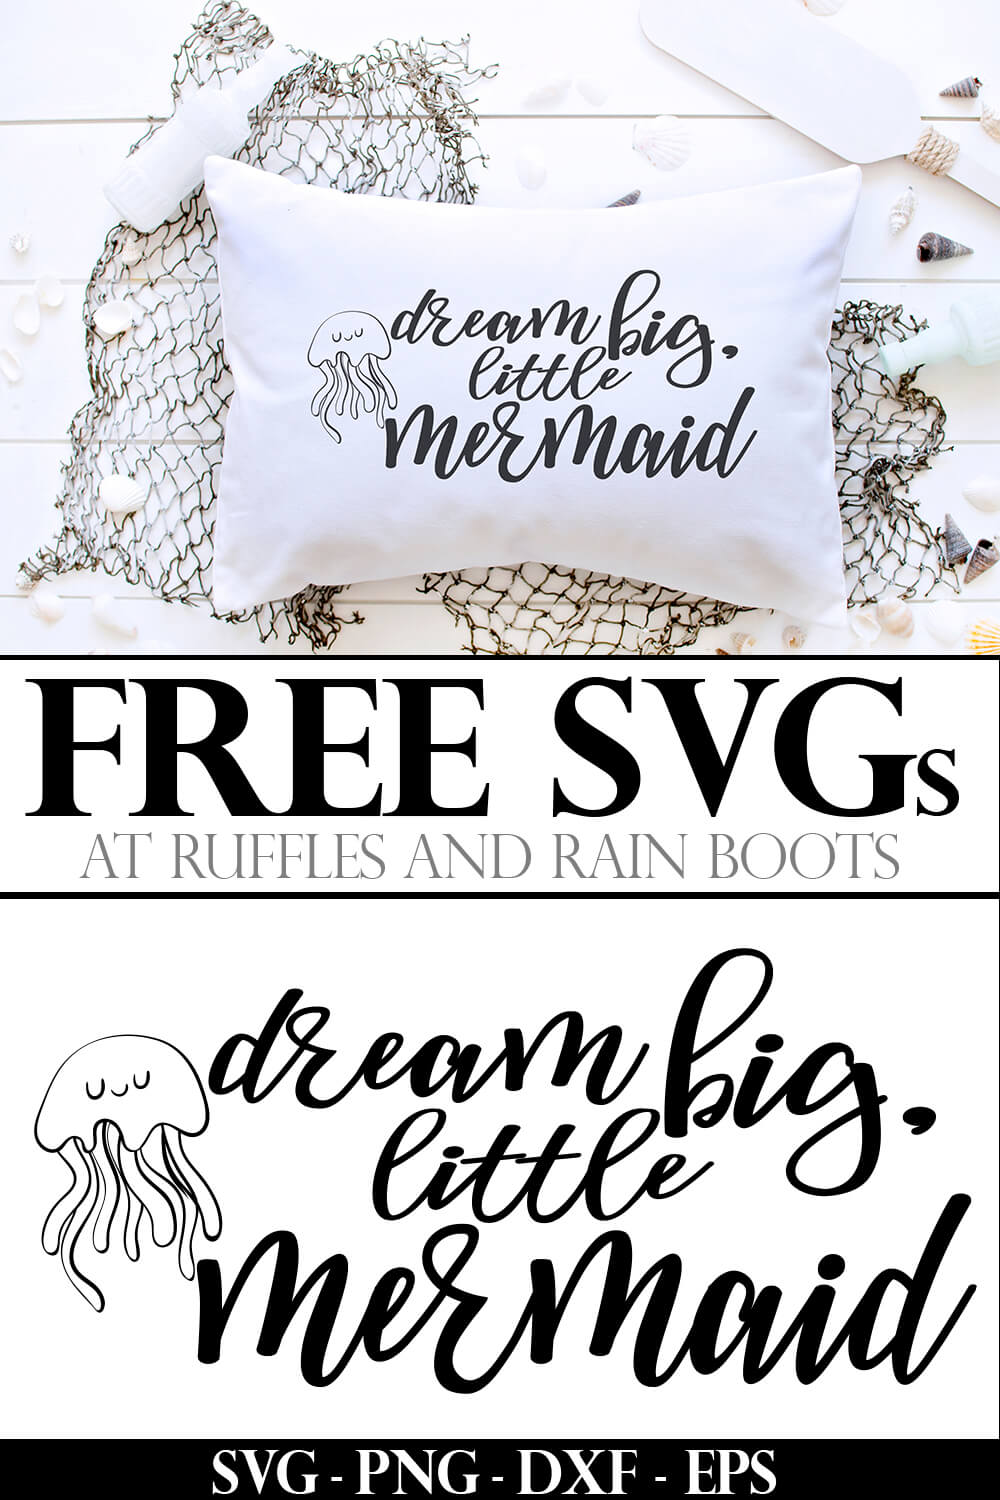 photo collage of dream big little mermaid free mermaid svg for cricut on a pillow with text which reads free svgs